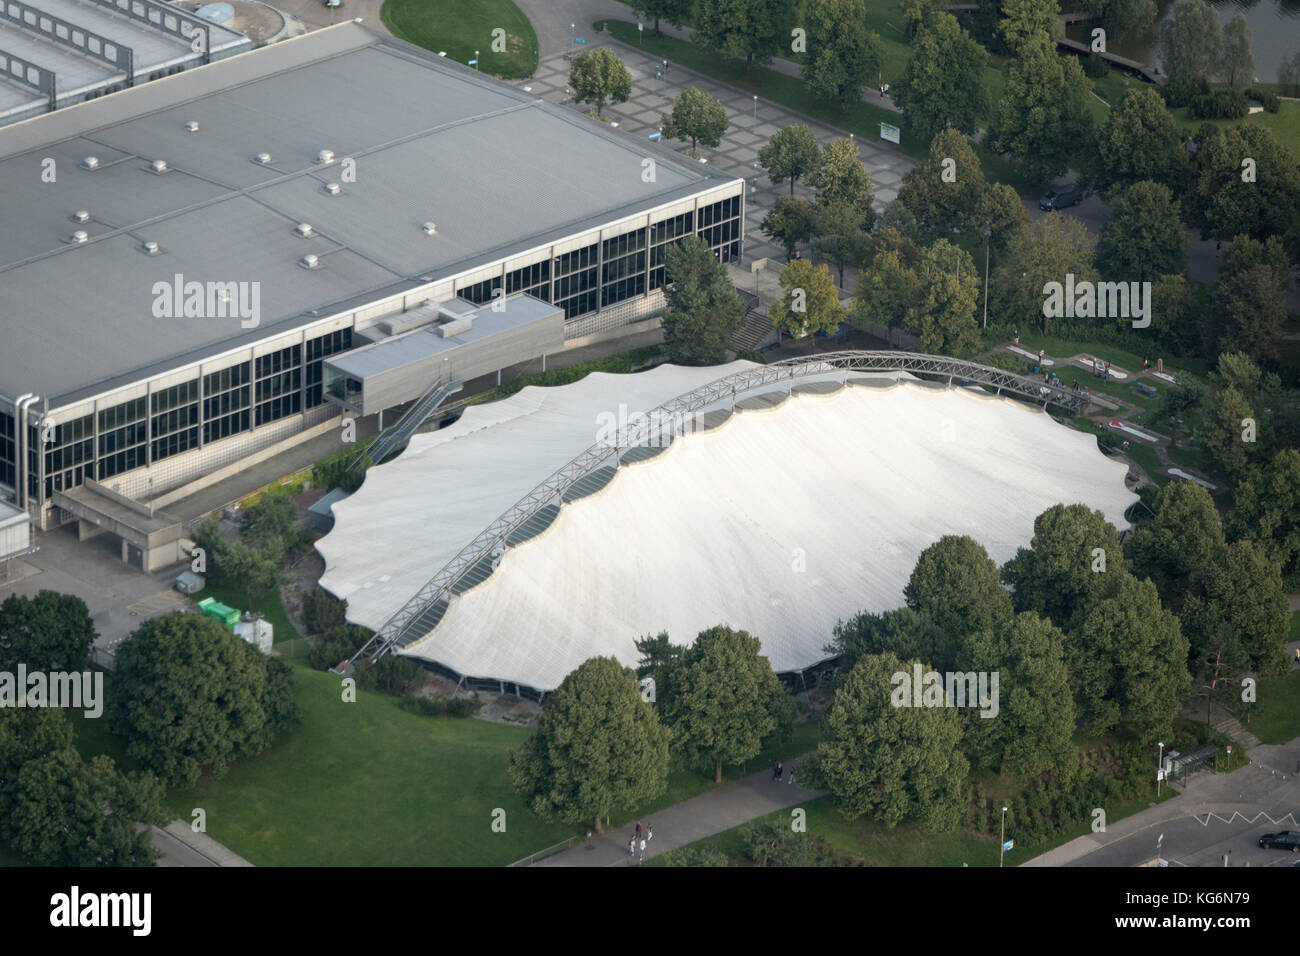 aerial view of Olympic Park (Olympiapark München), Munich, Bavaria, Germany - Stock Image